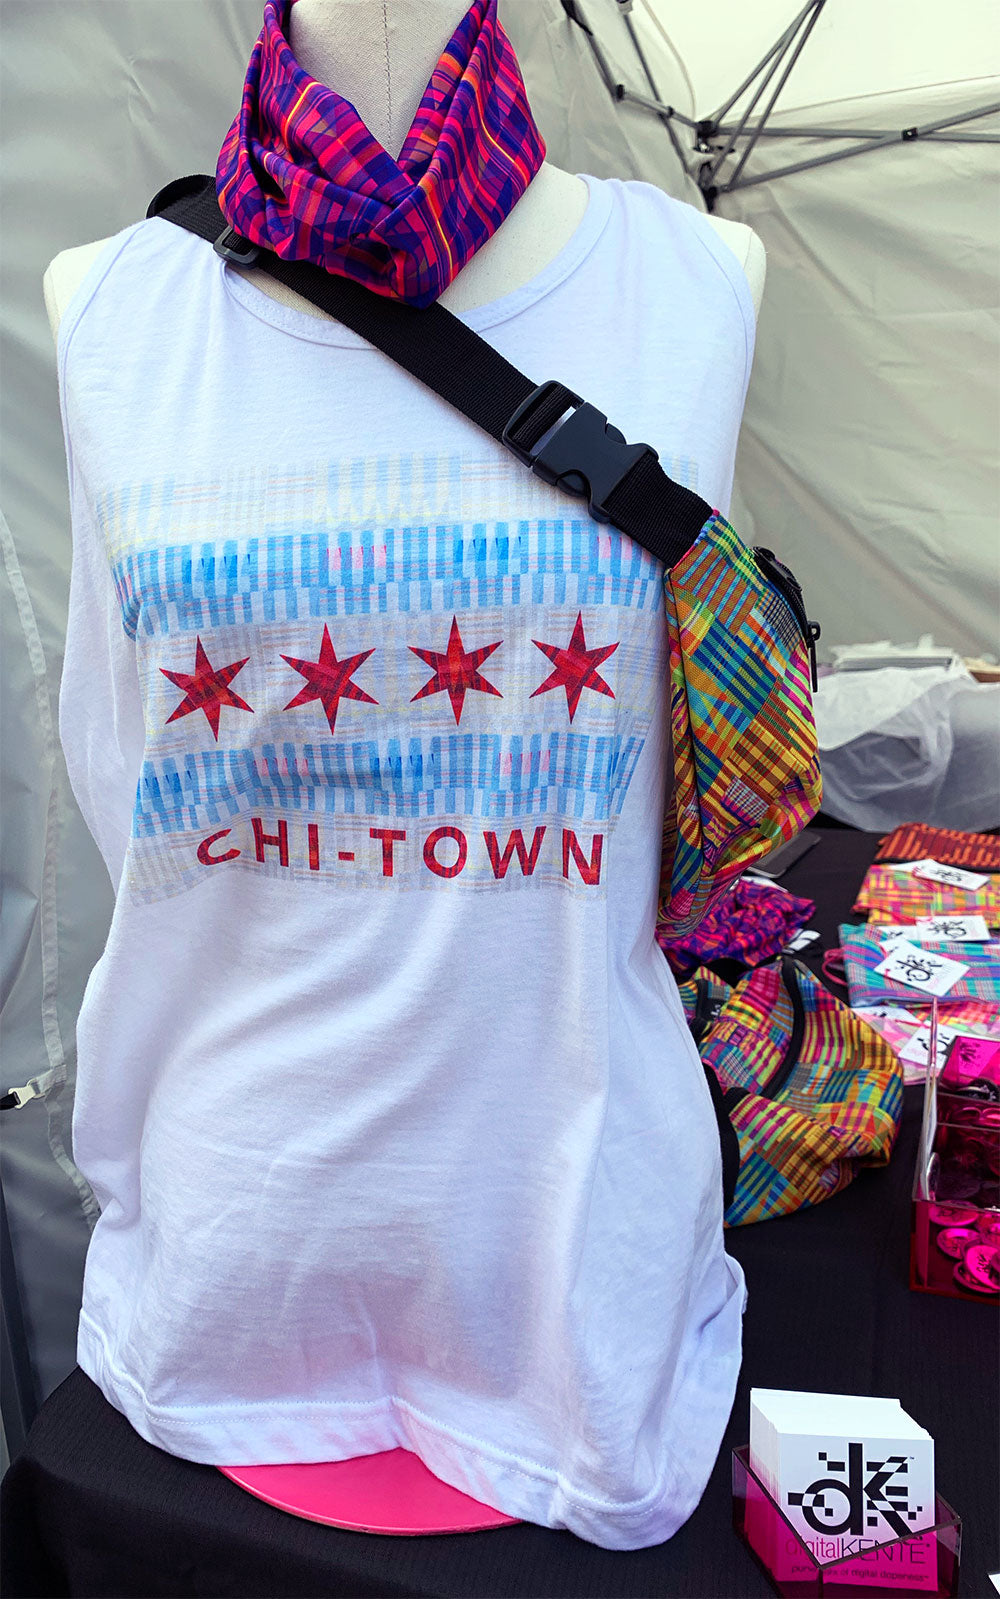 CHI-TOWN Tank